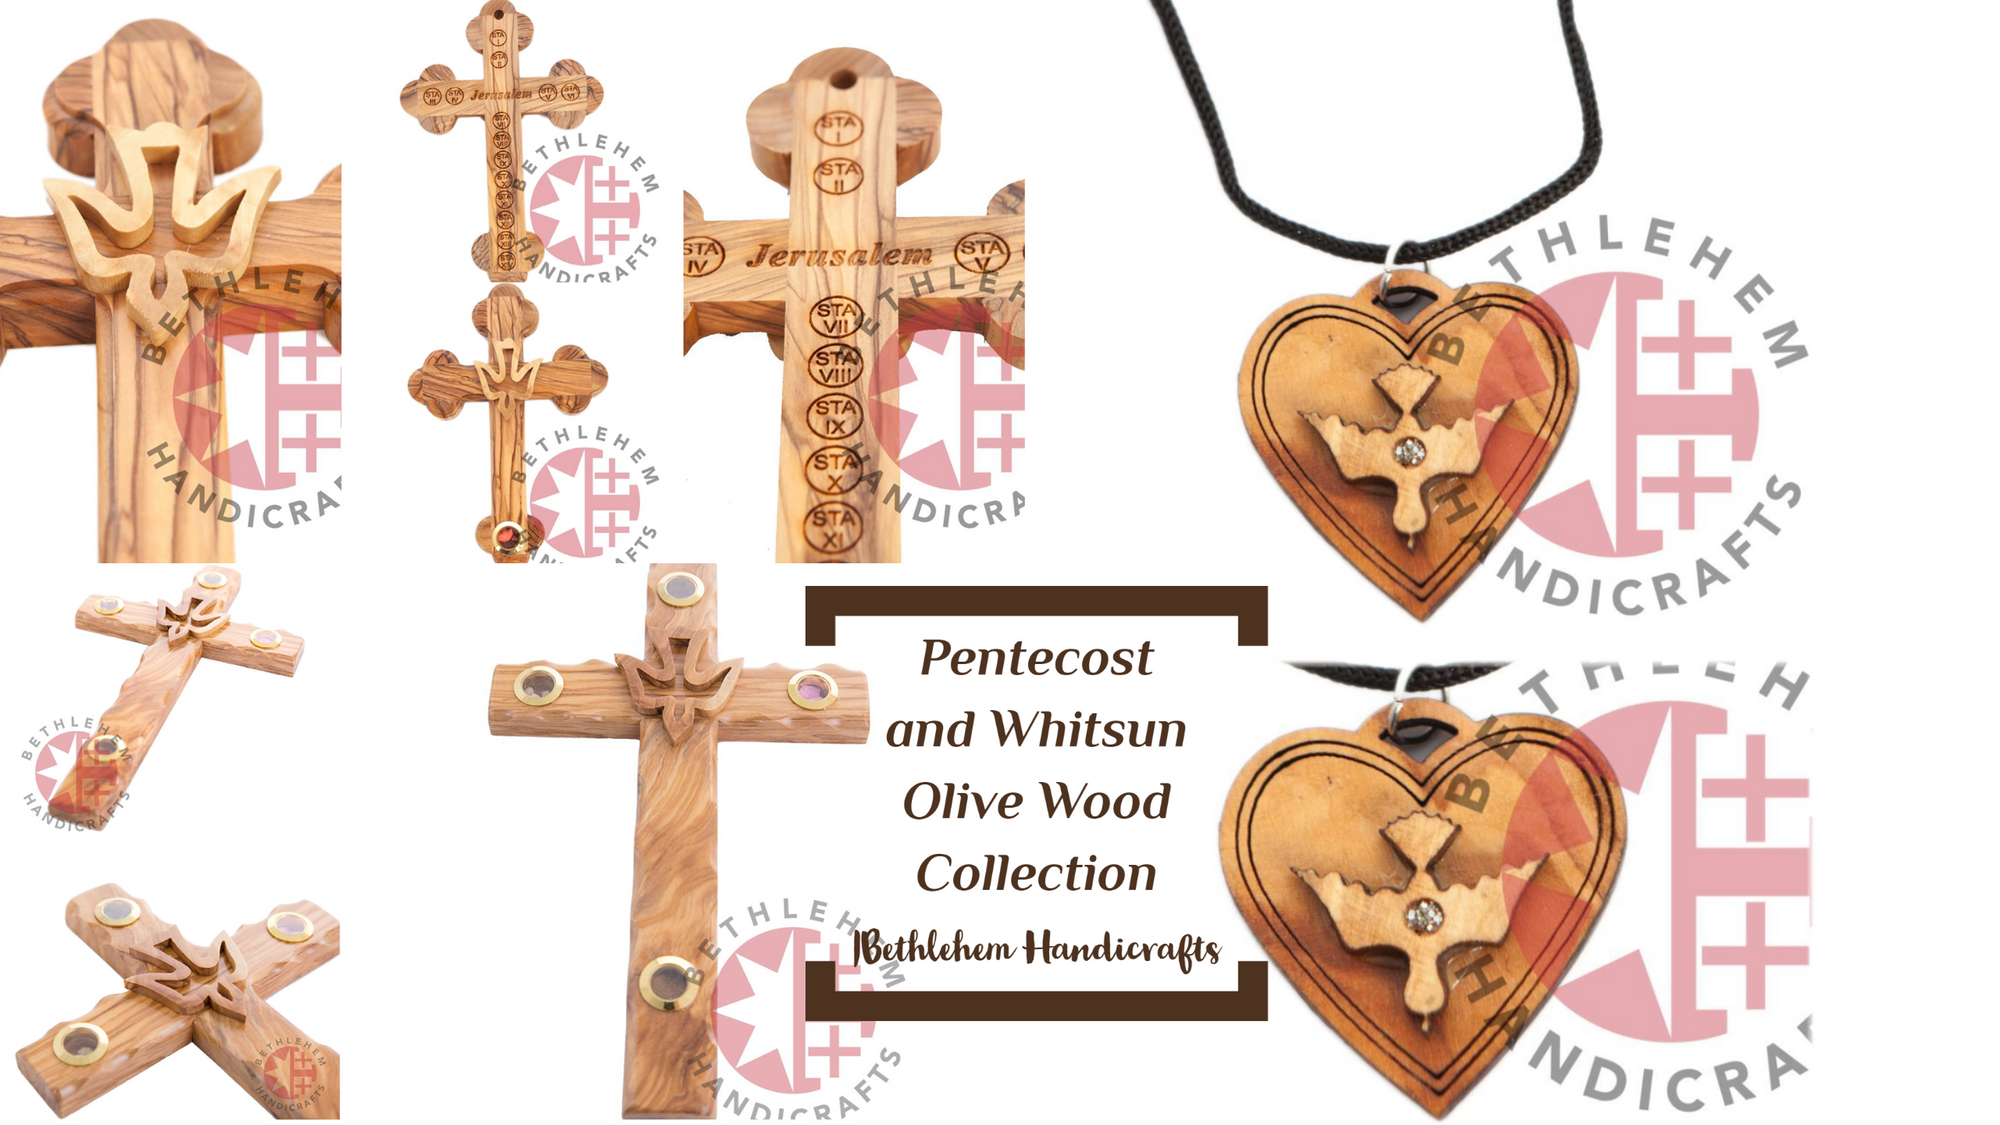 Pentecost and Whitsun Olive Wood Collection | Bethlehem Handicrafts